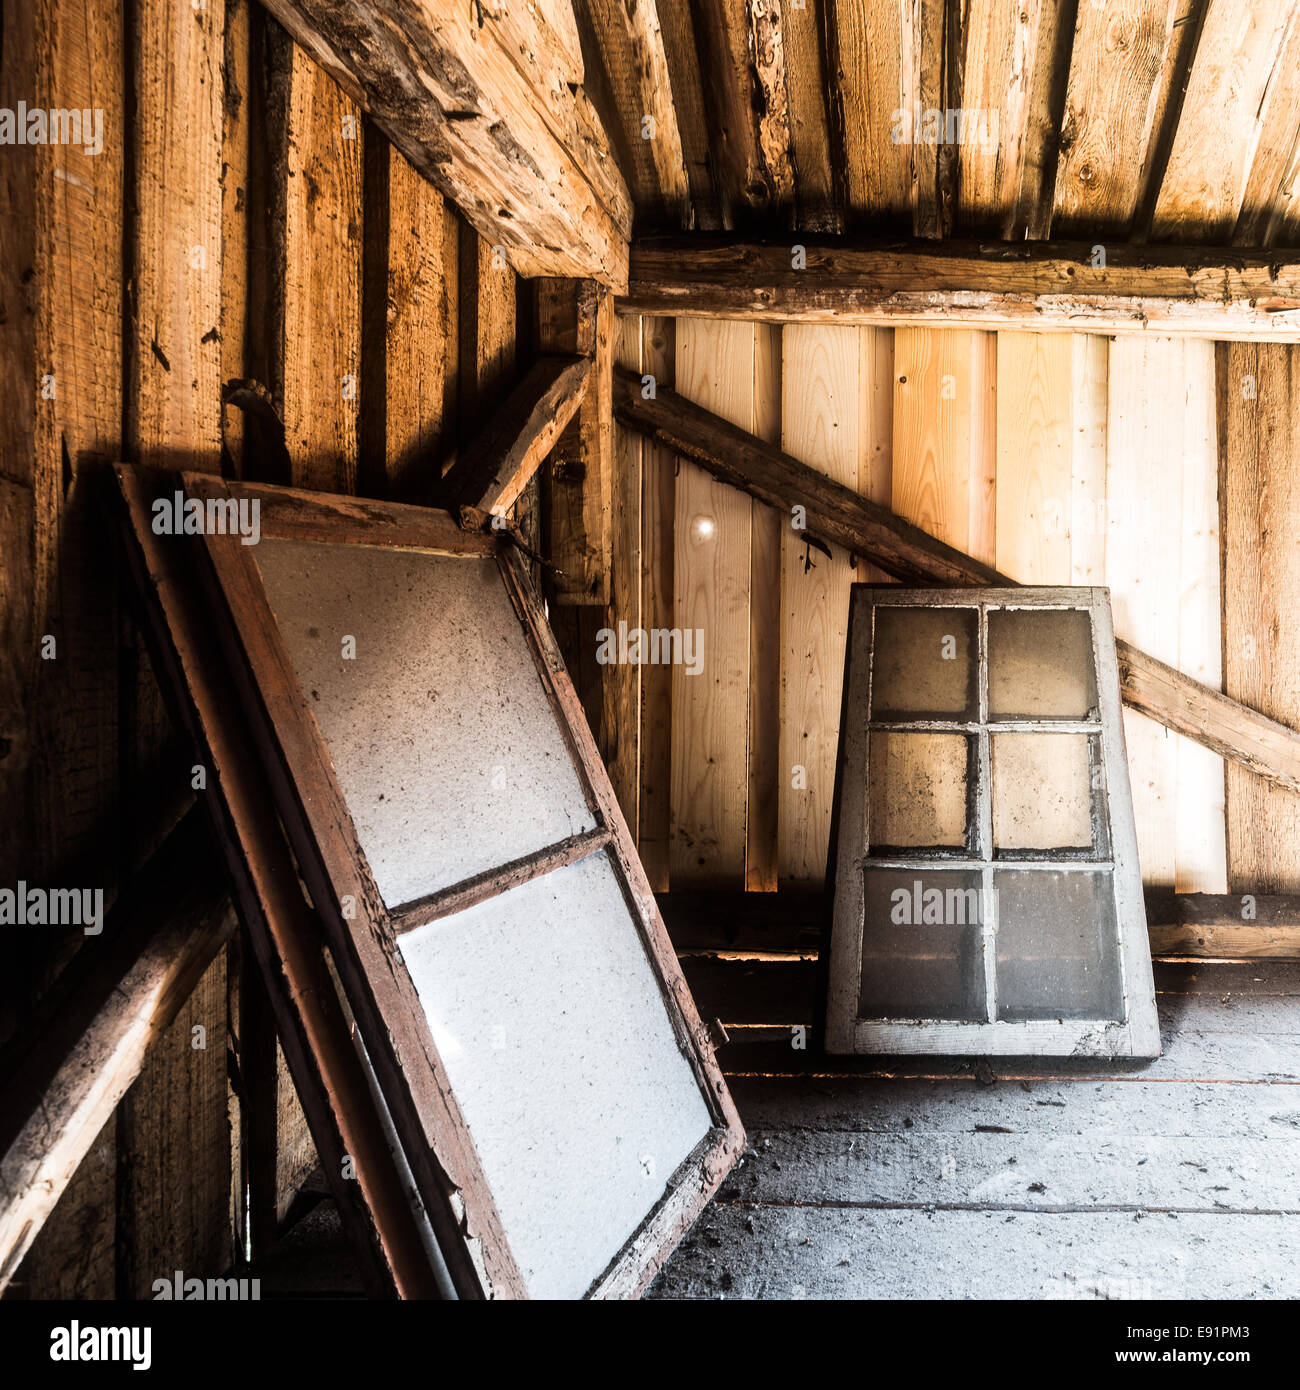 Dirty windows laying in a wooden barn - Stock Image